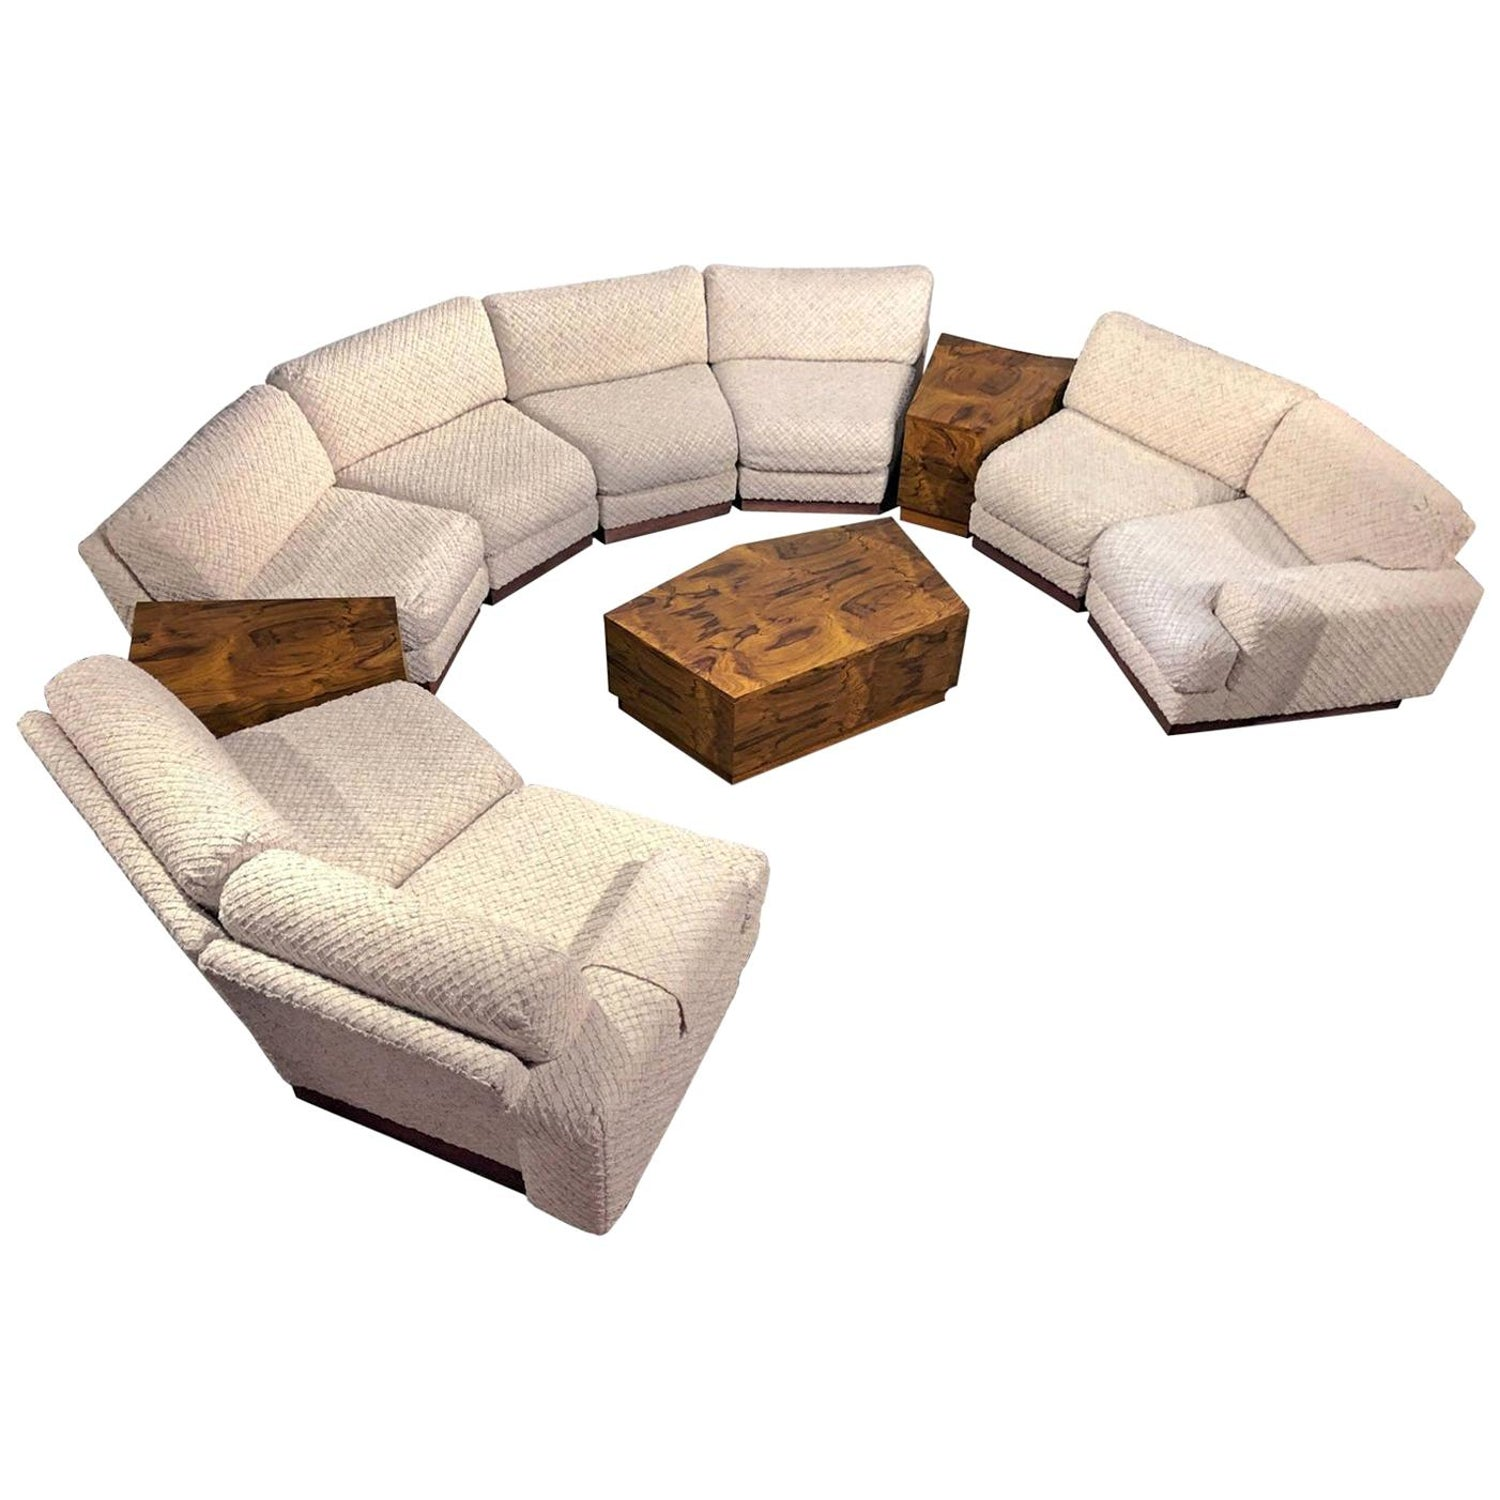 Phenomenal 1980S Sectional Sofas 34 For Sale At 1Stdibs Andrewgaddart Wooden Chair Designs For Living Room Andrewgaddartcom